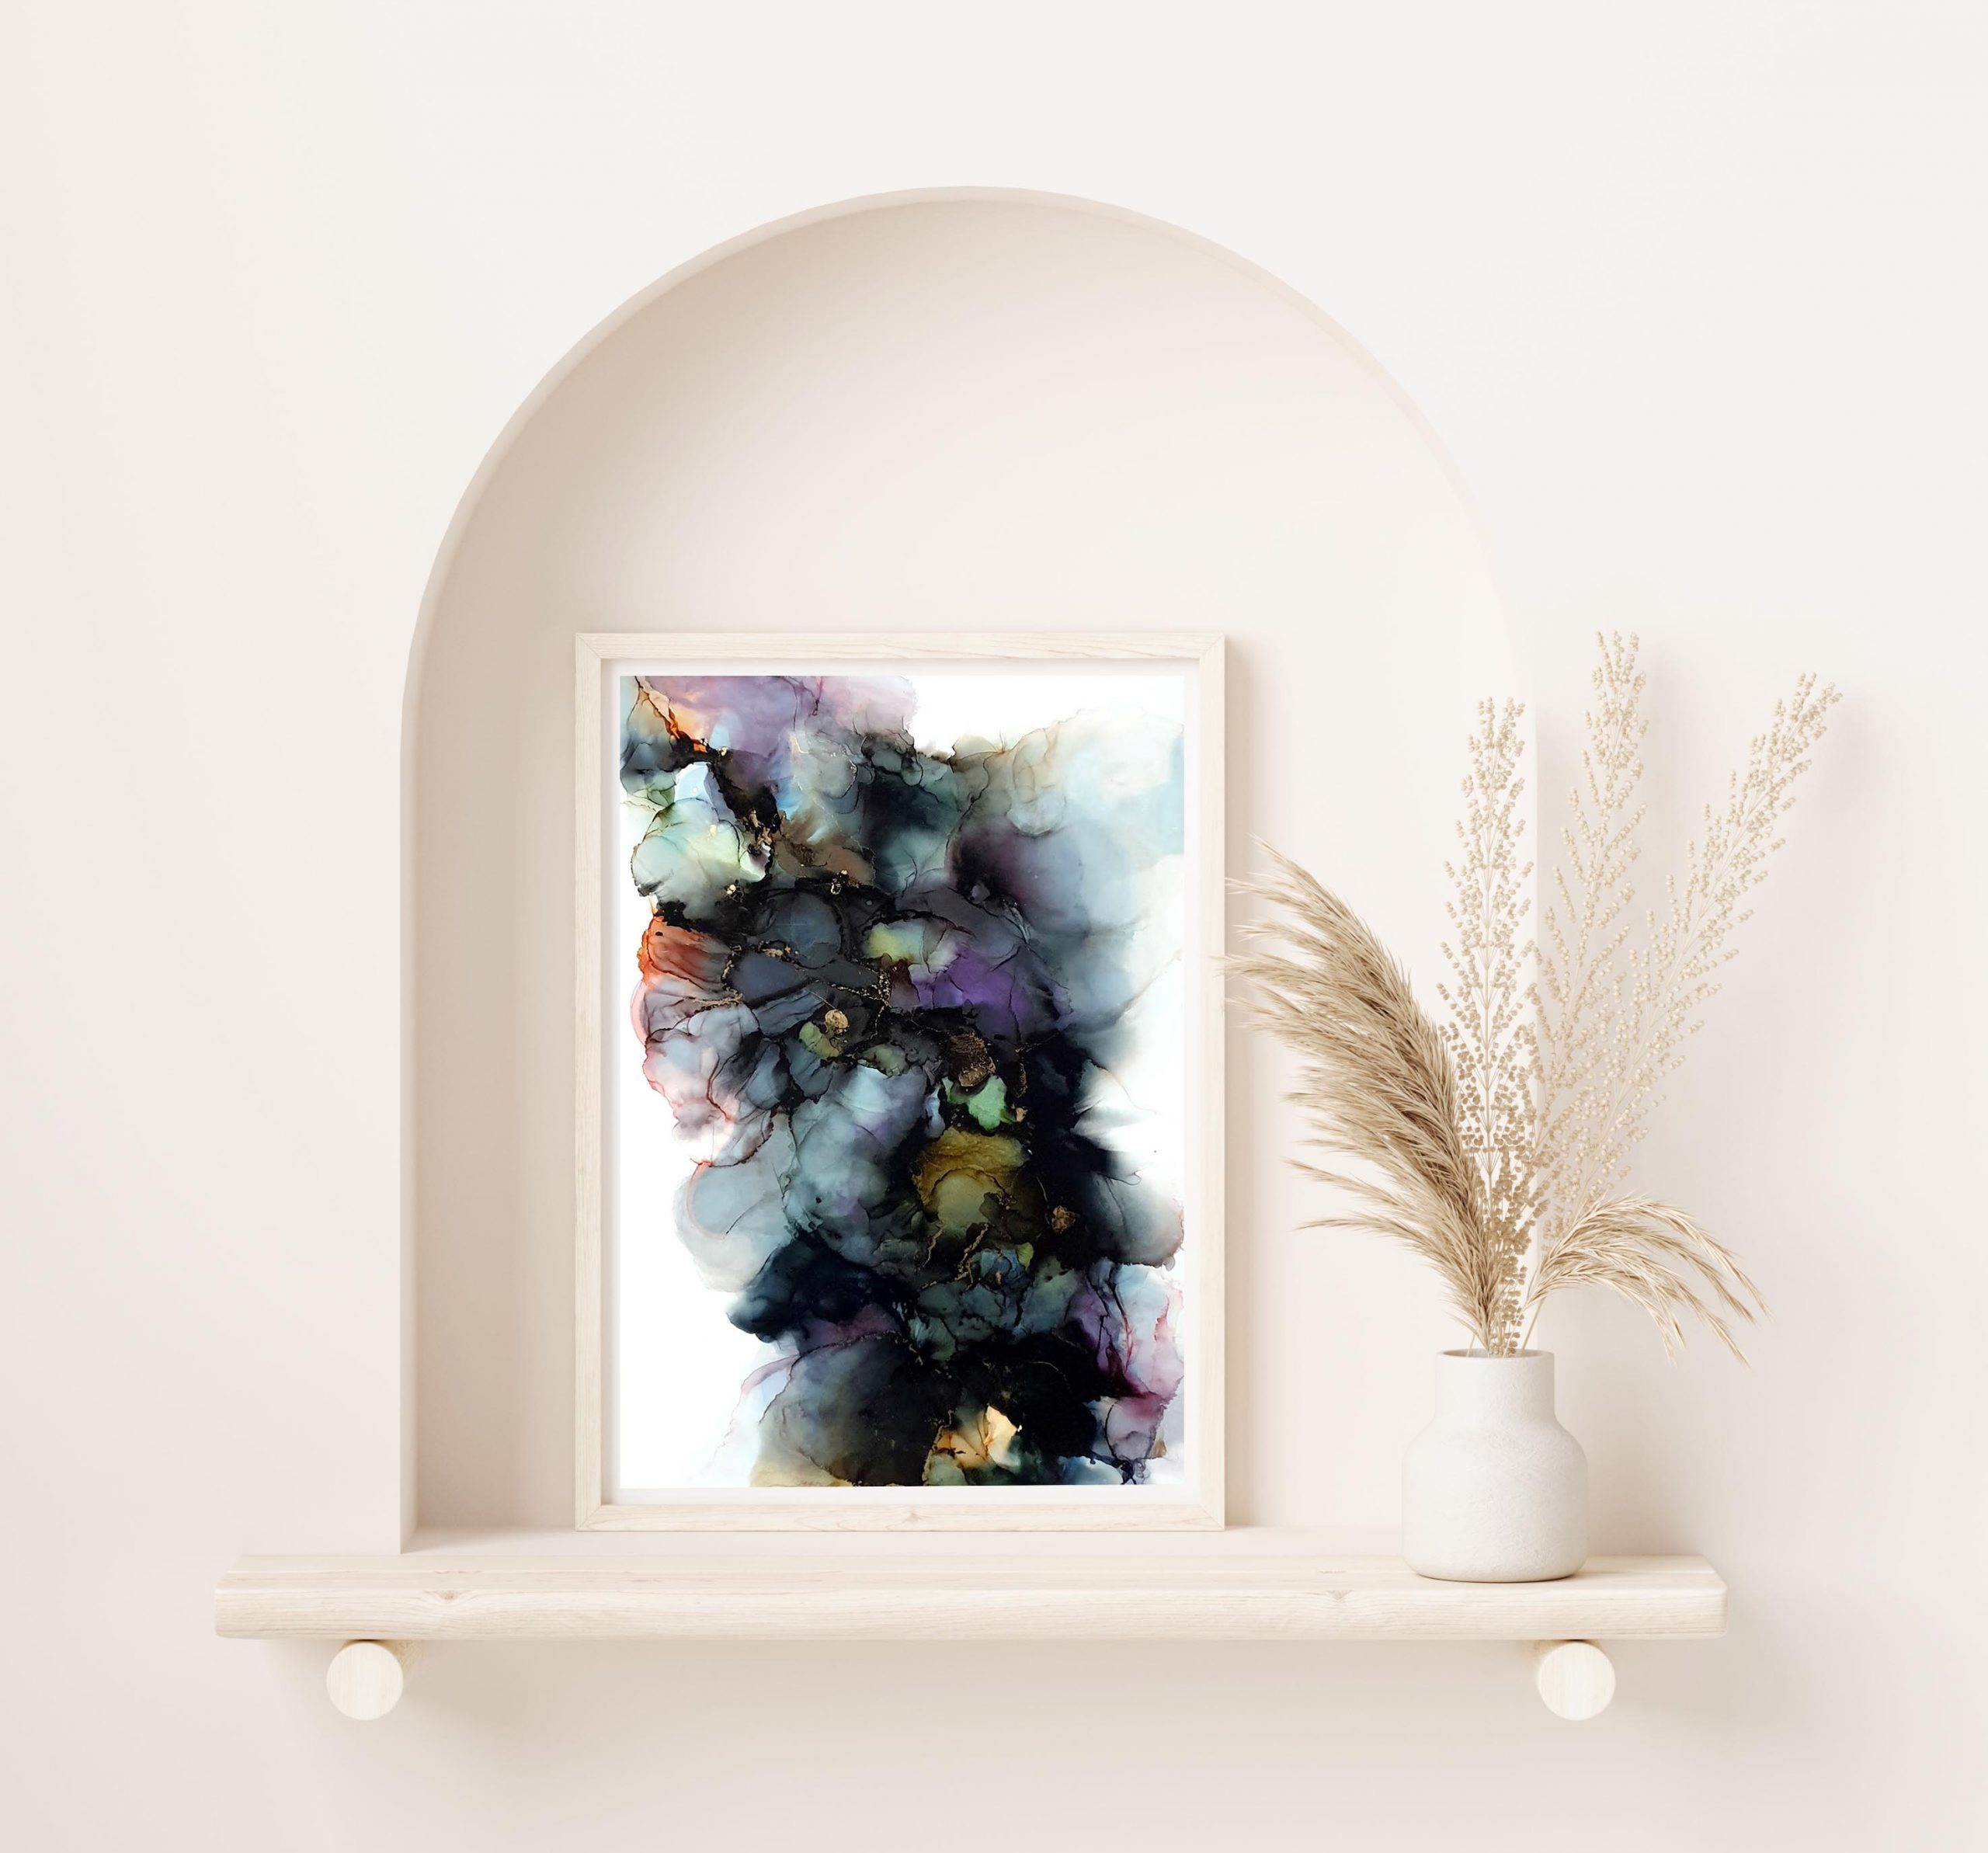 Mock Up Frame Close Up In Home Interior Background With Plant In Vase